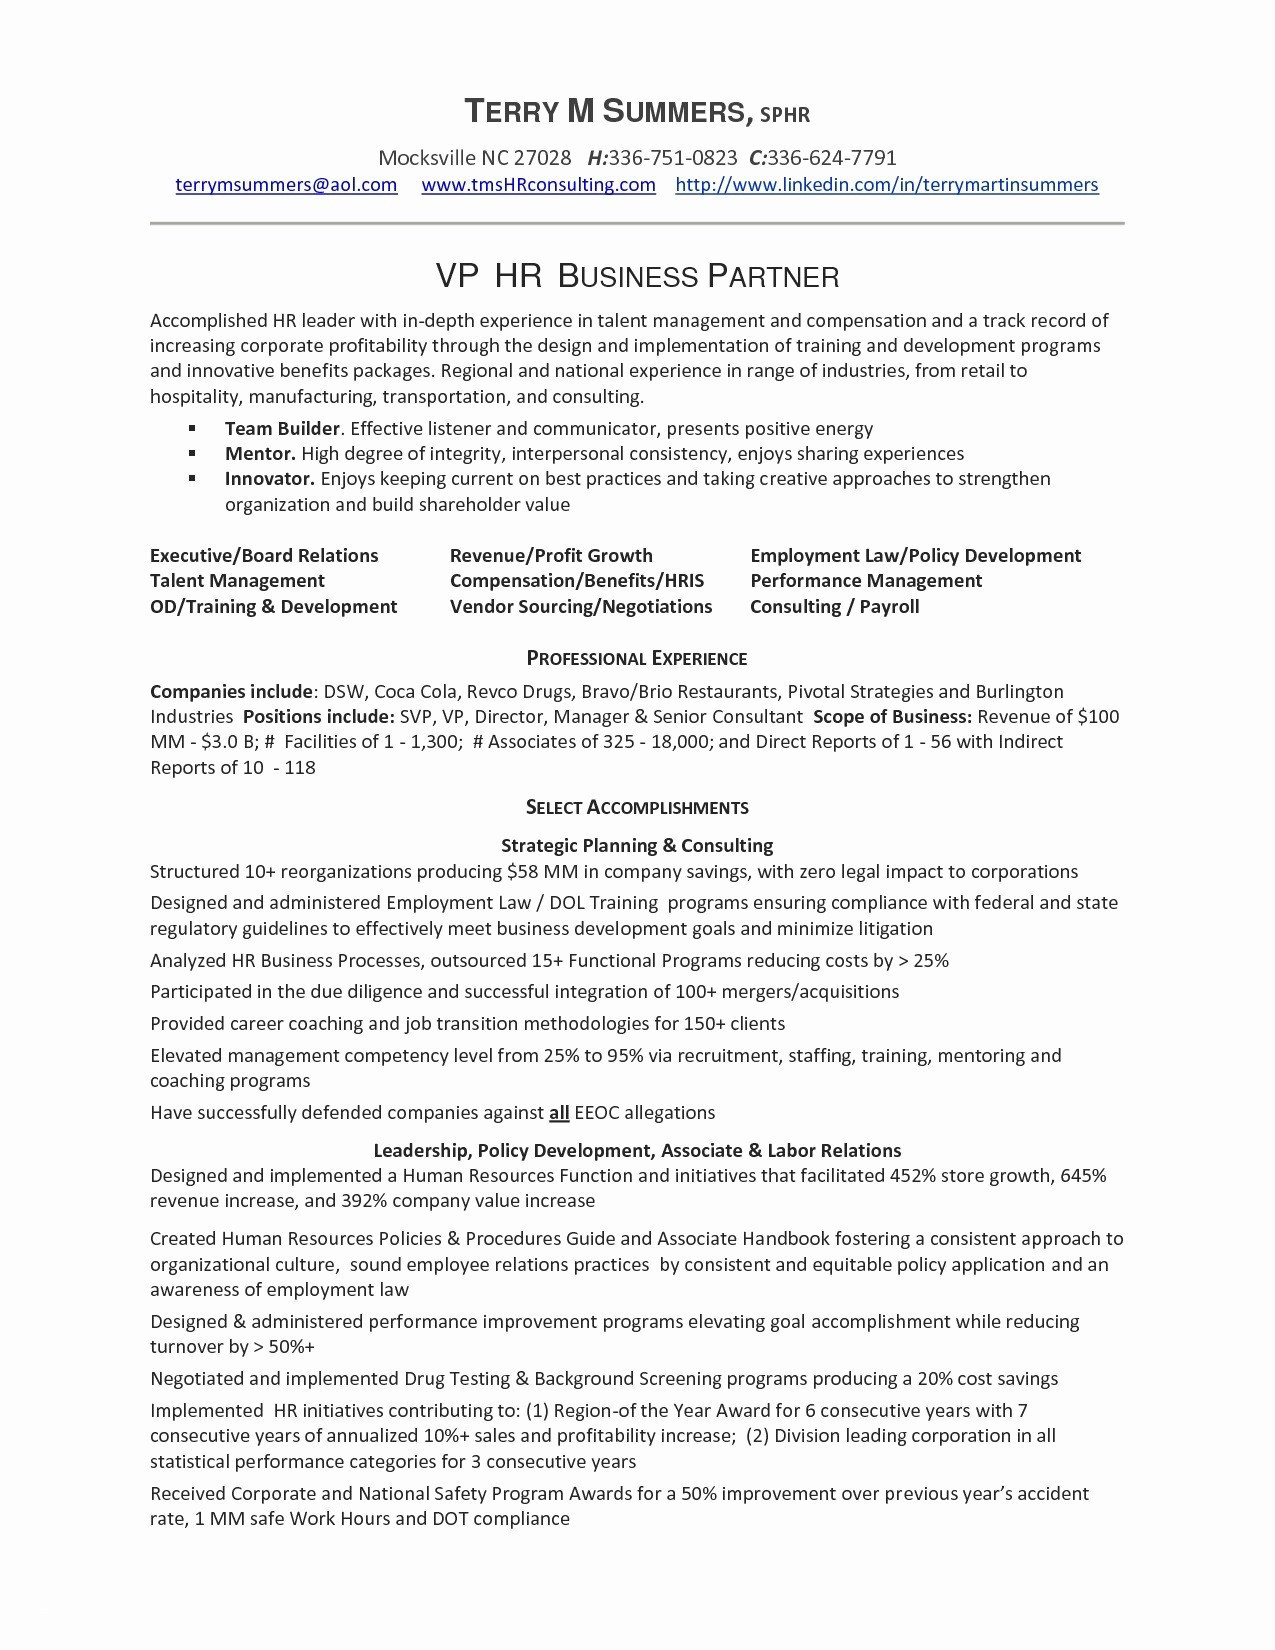 resume template career change example-Attorney Career Change Resume Elegant Career Change Resume Samples 19-r